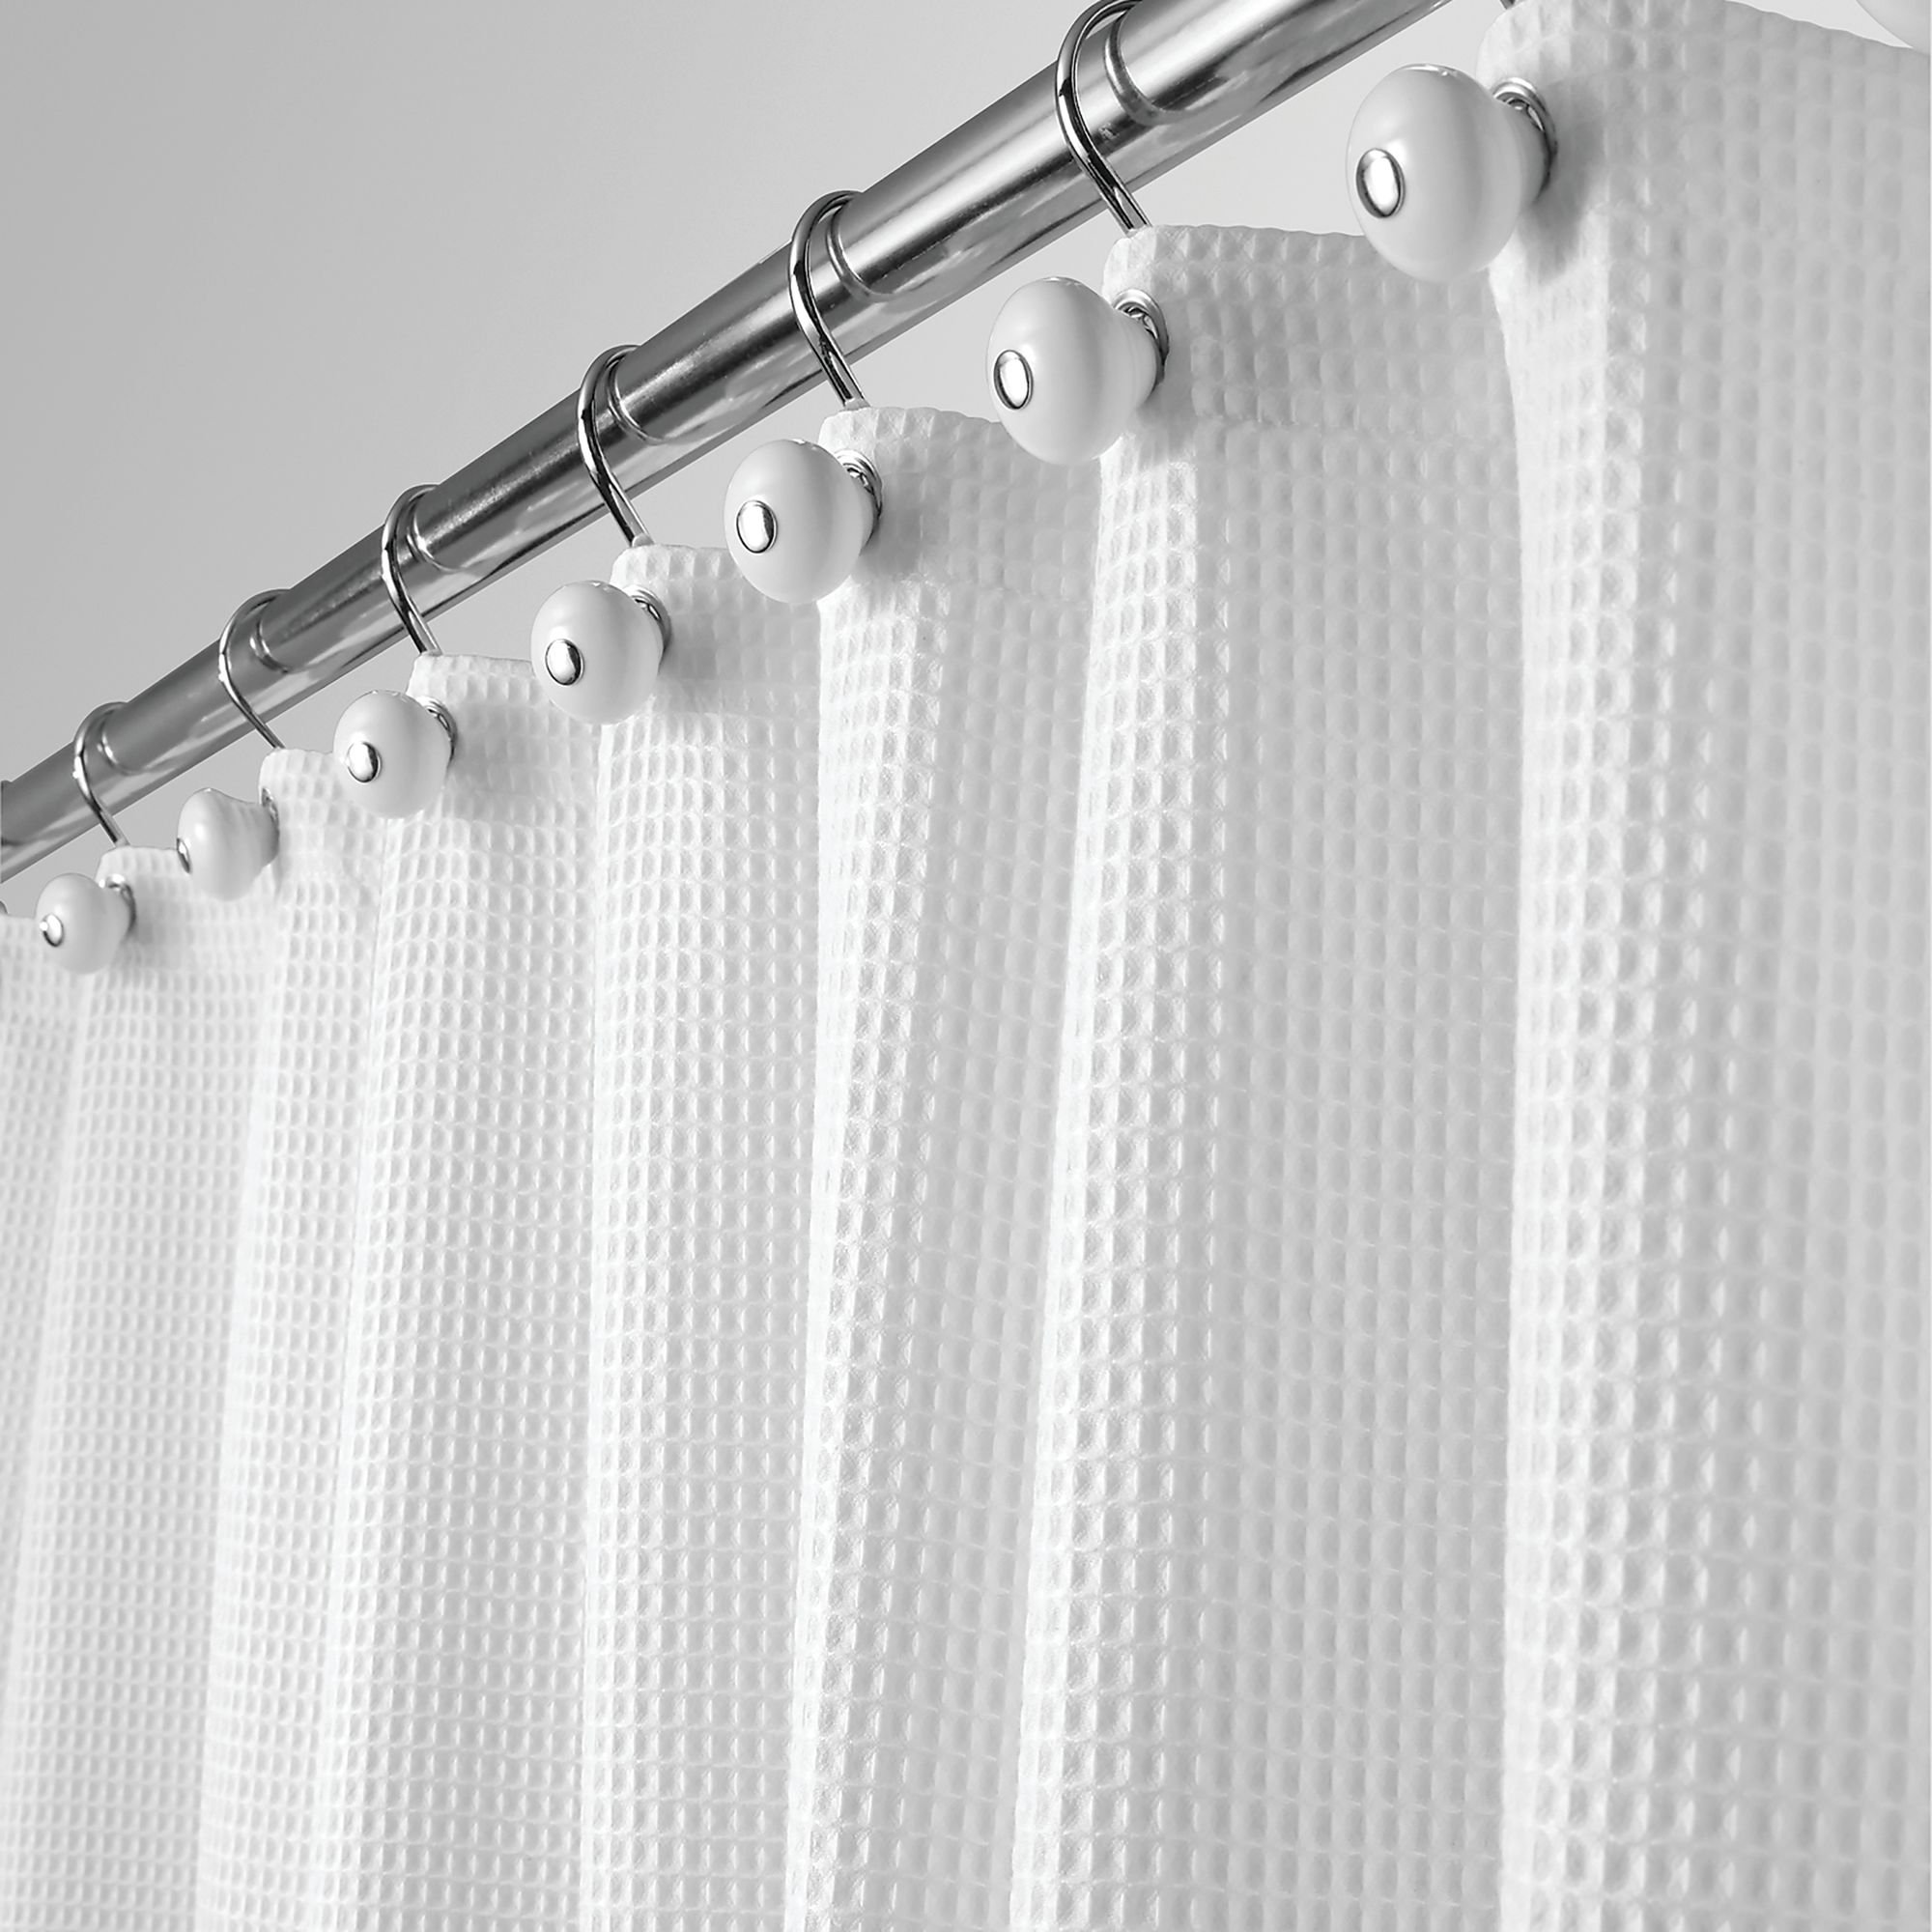 mDesign Long Hotel Quality Polyester/Cotton Blend Fabric Shower Curtain, Rustproof Metal Grommets - Waffle Weave for Bathroom Showers and Bathtubs - 72'' x 84'', White